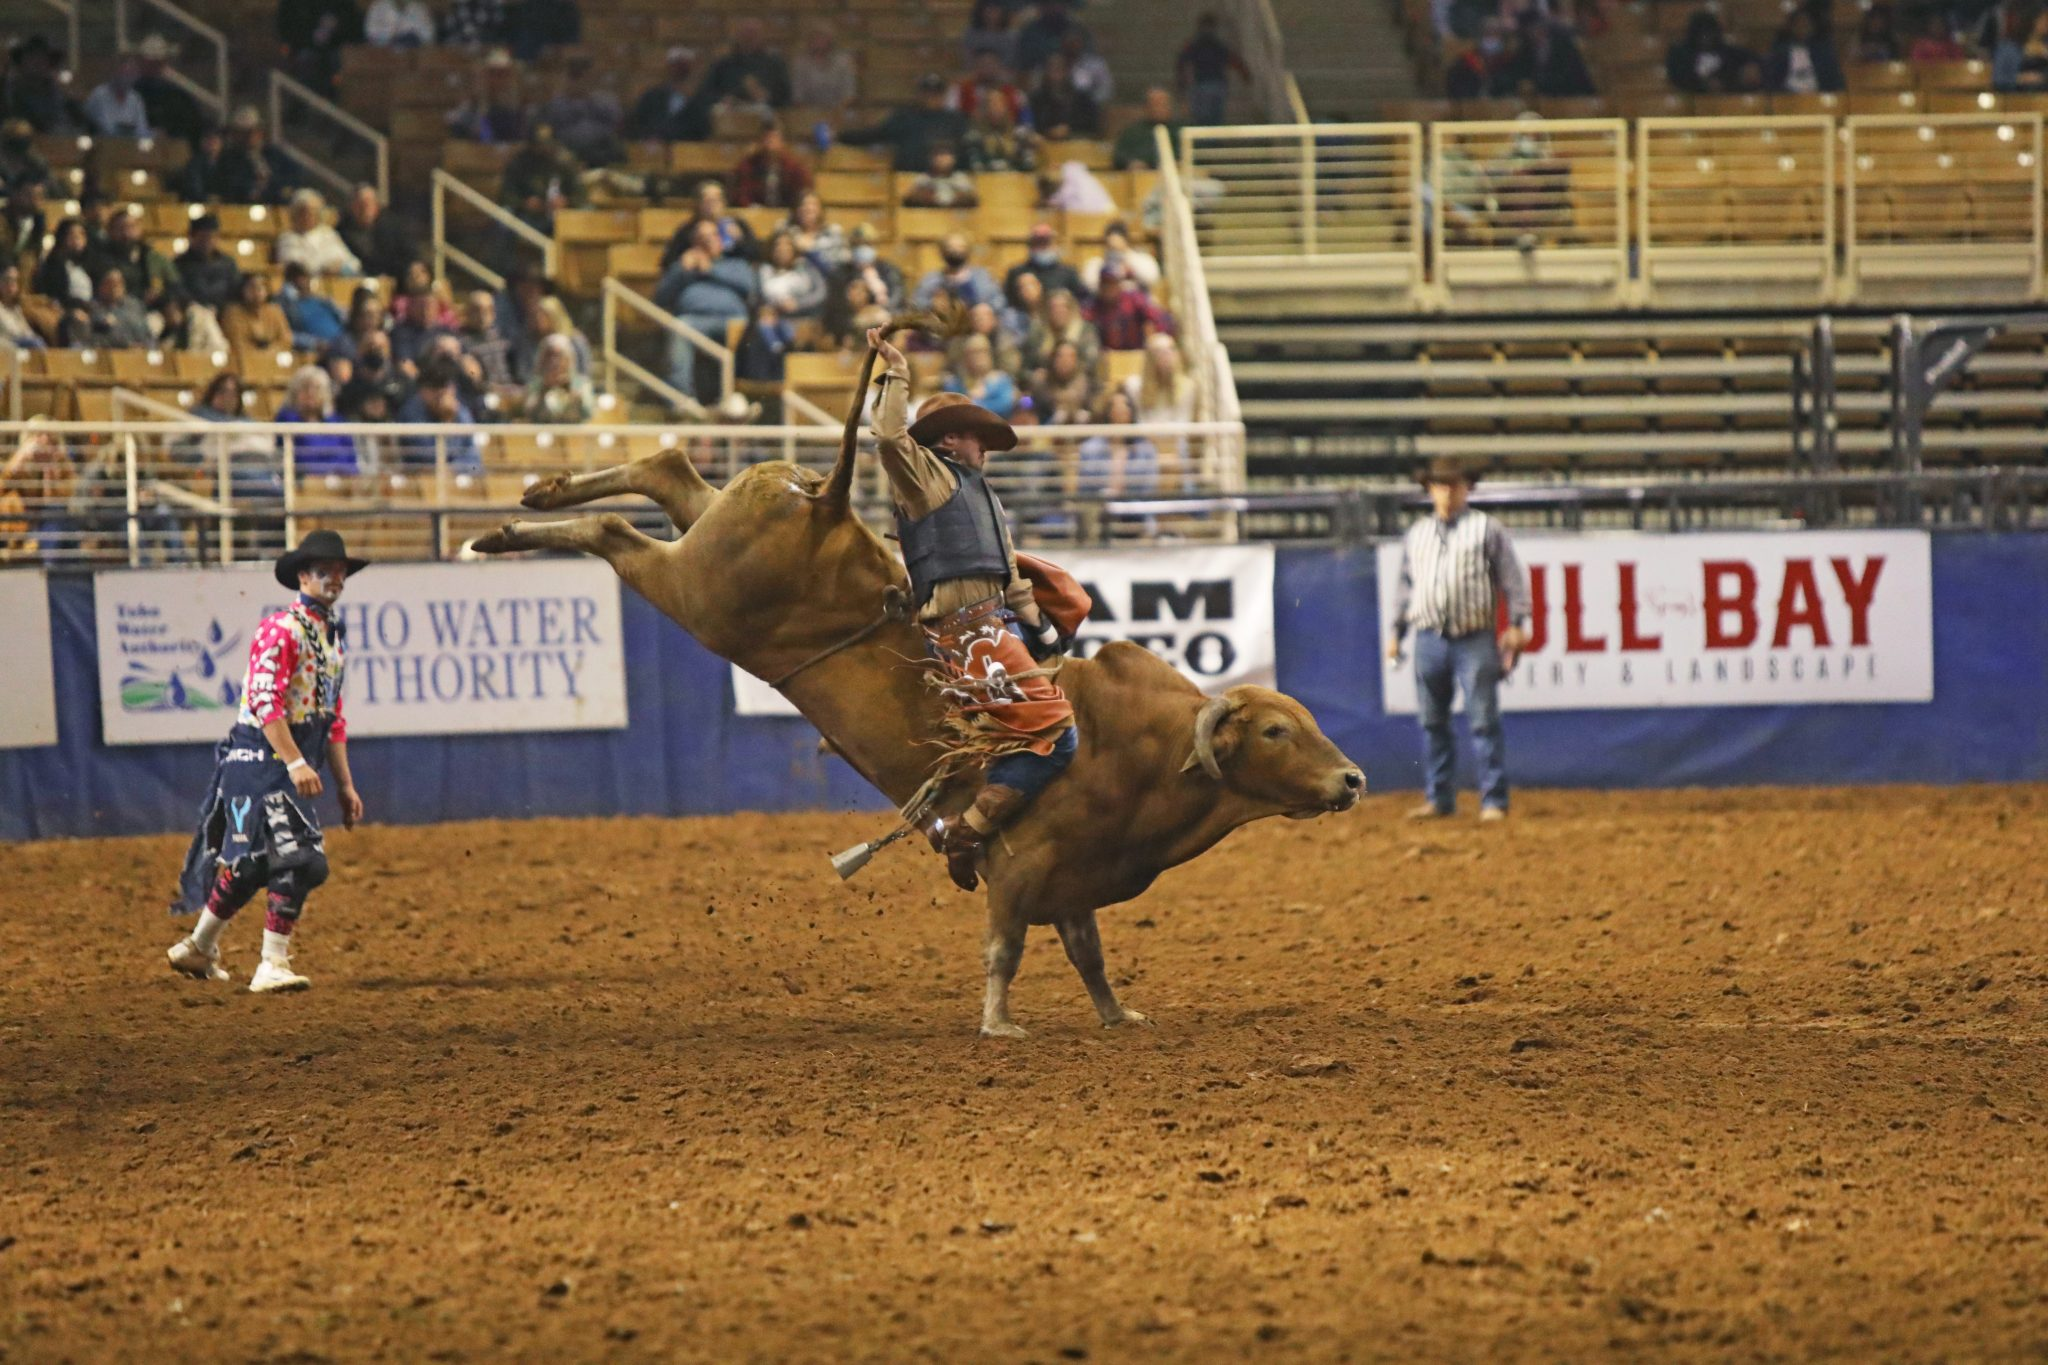 bull riding brown bull with back legs in the air